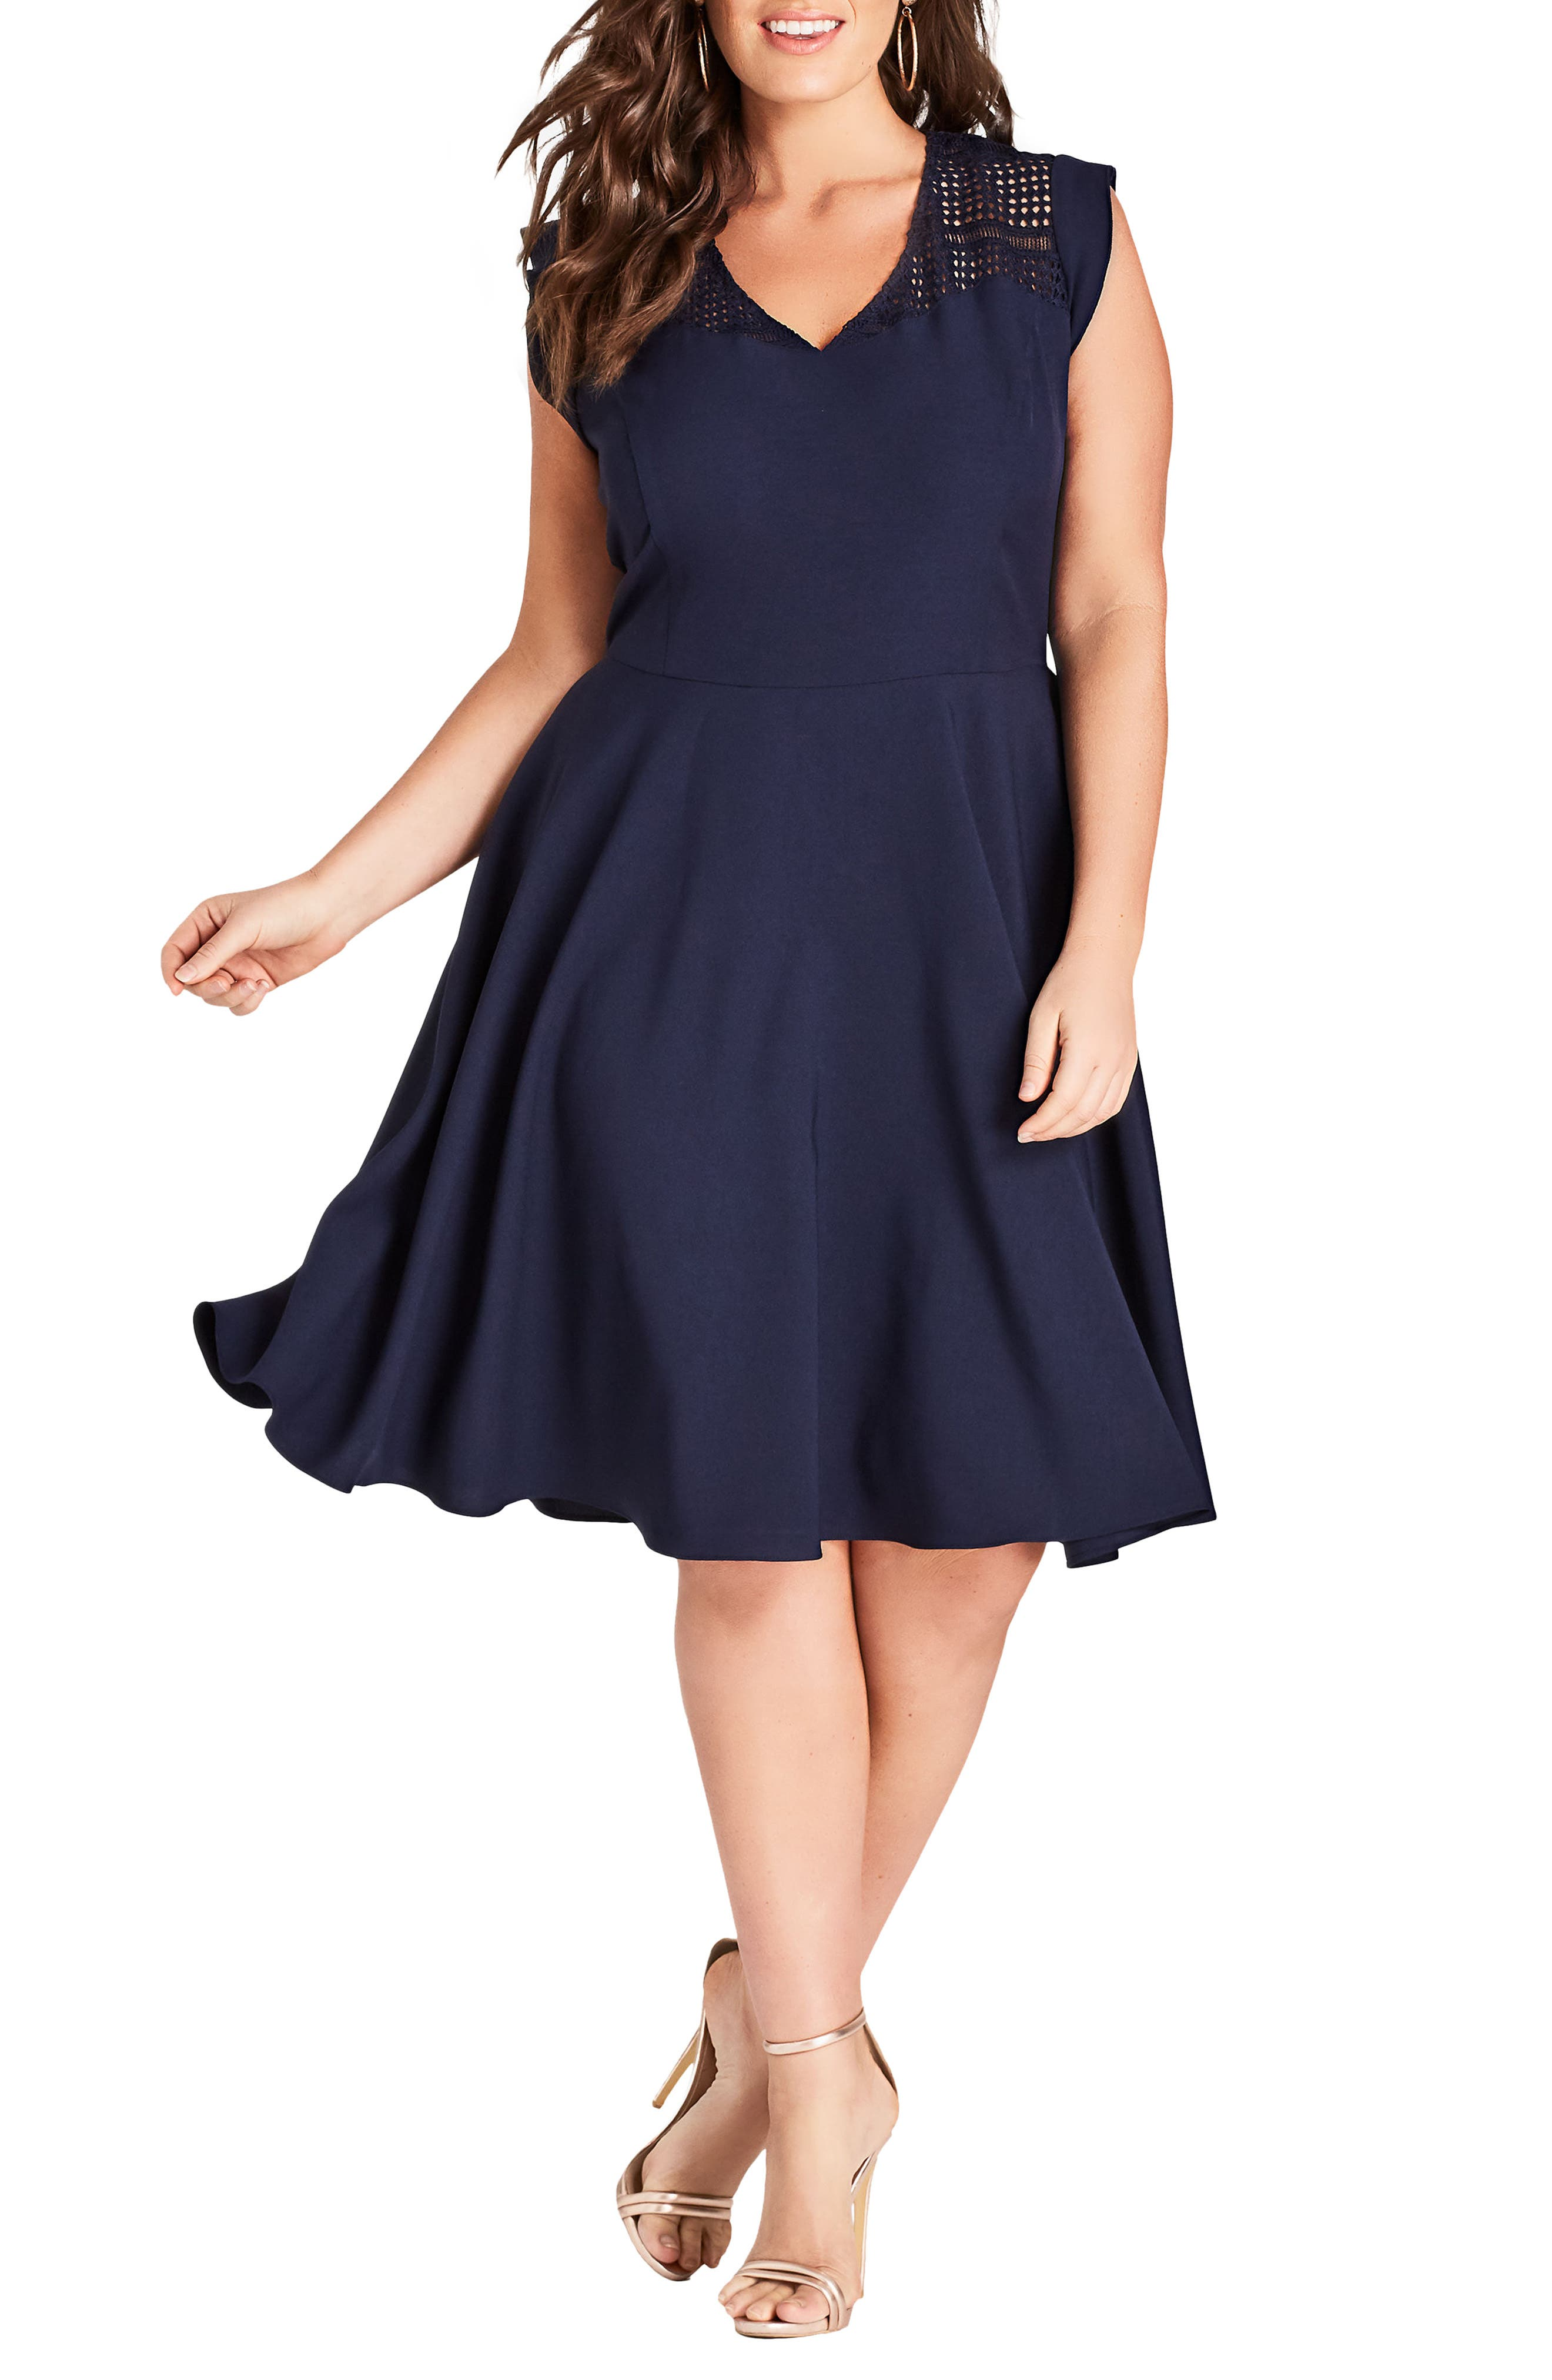 First Place Crochet Yoke Fit & Flare Dress,                             Main thumbnail 1, color,                             Navy